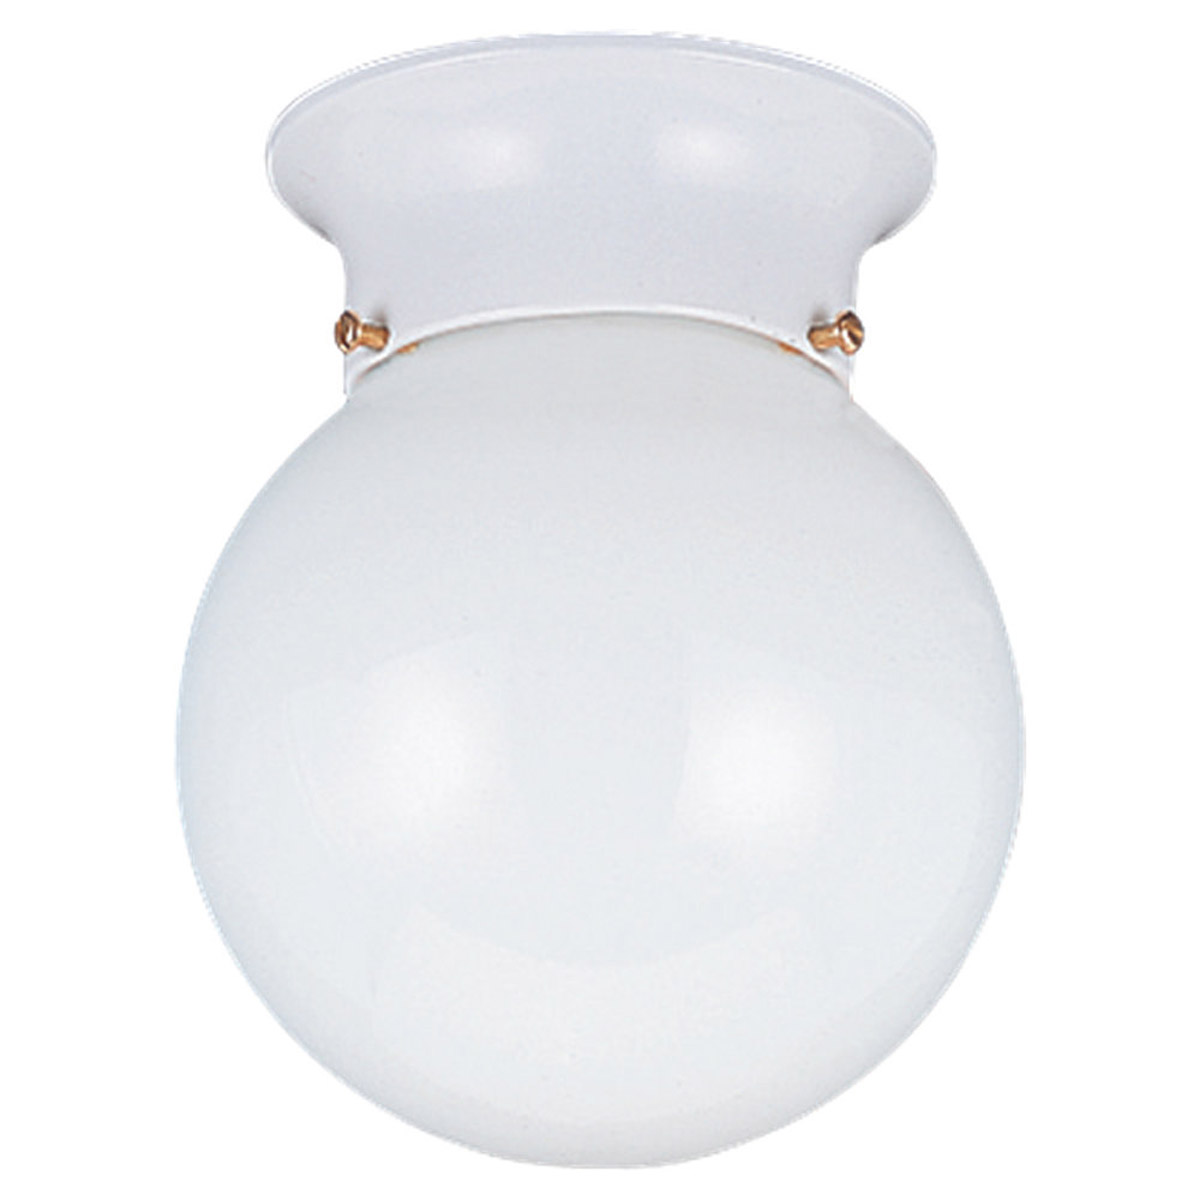 Sea Gull Lighting Tomkin 1 Light Flush Mount in White 5368-15 photo